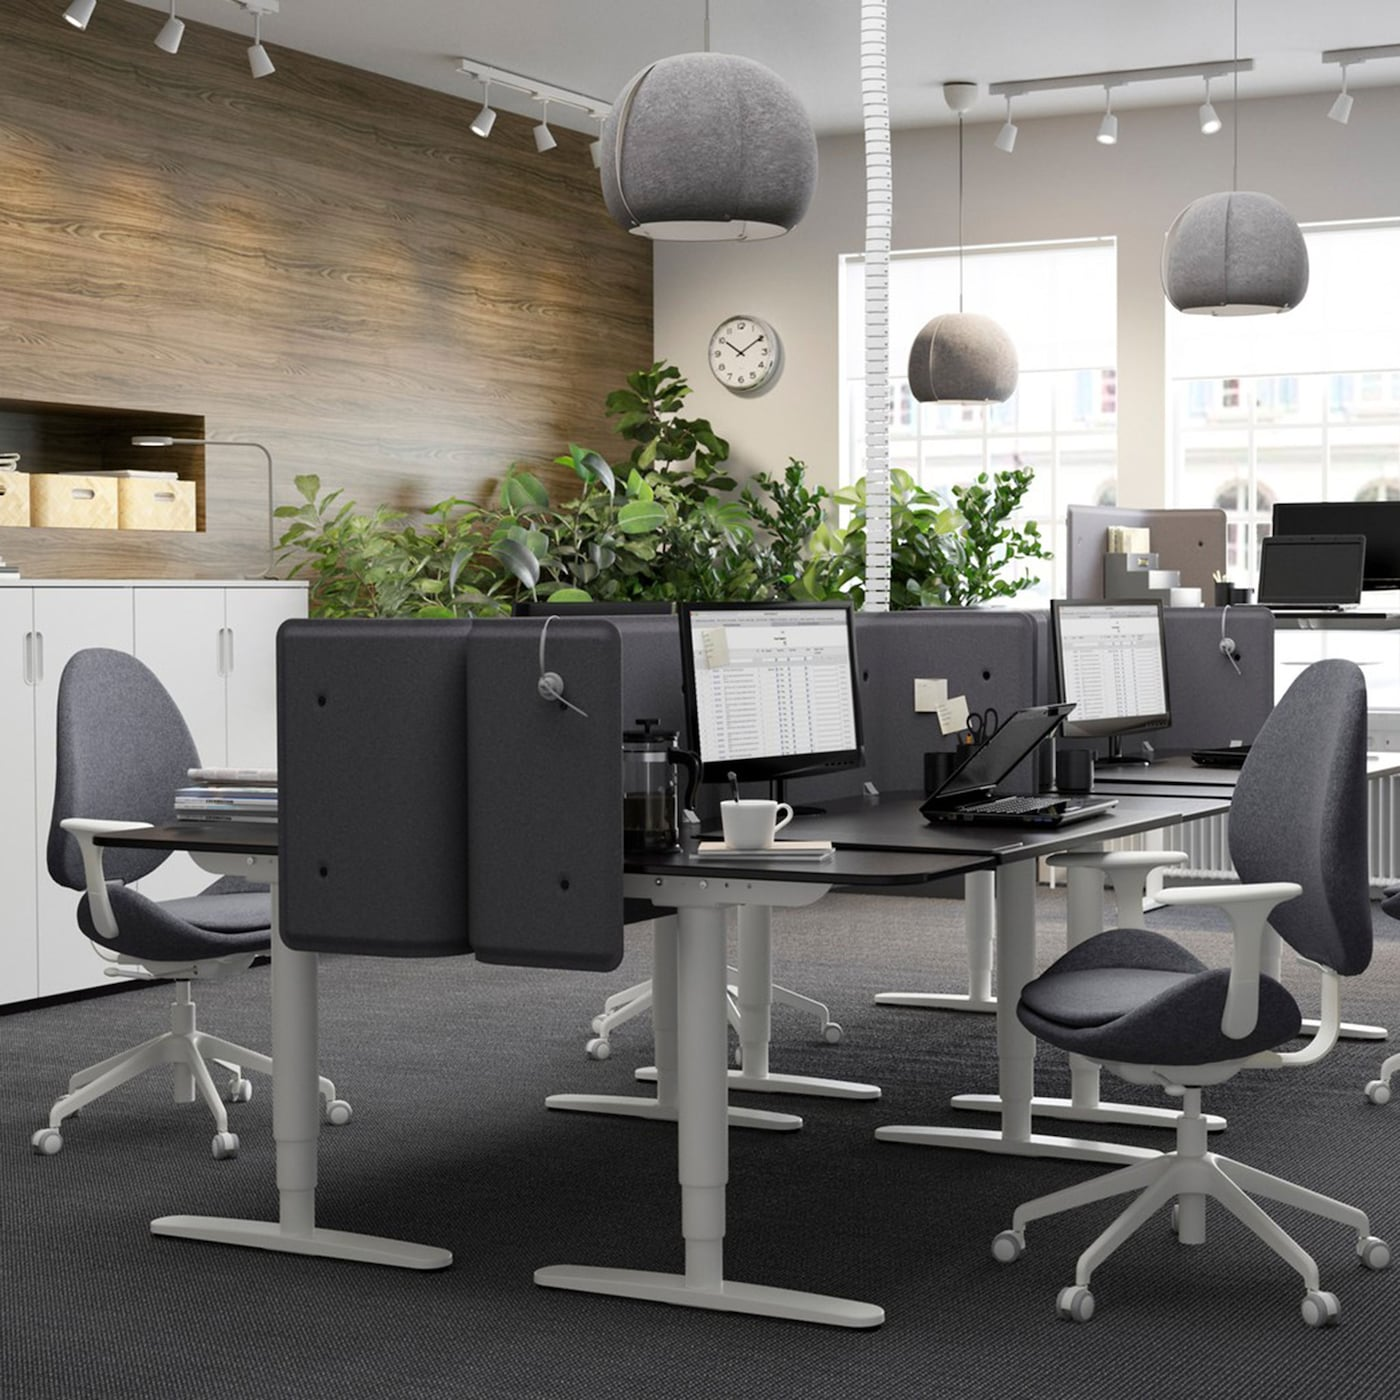 A black and grey office space with black brown BEKANT sit-stand work desks, facing each other to create cubicles.